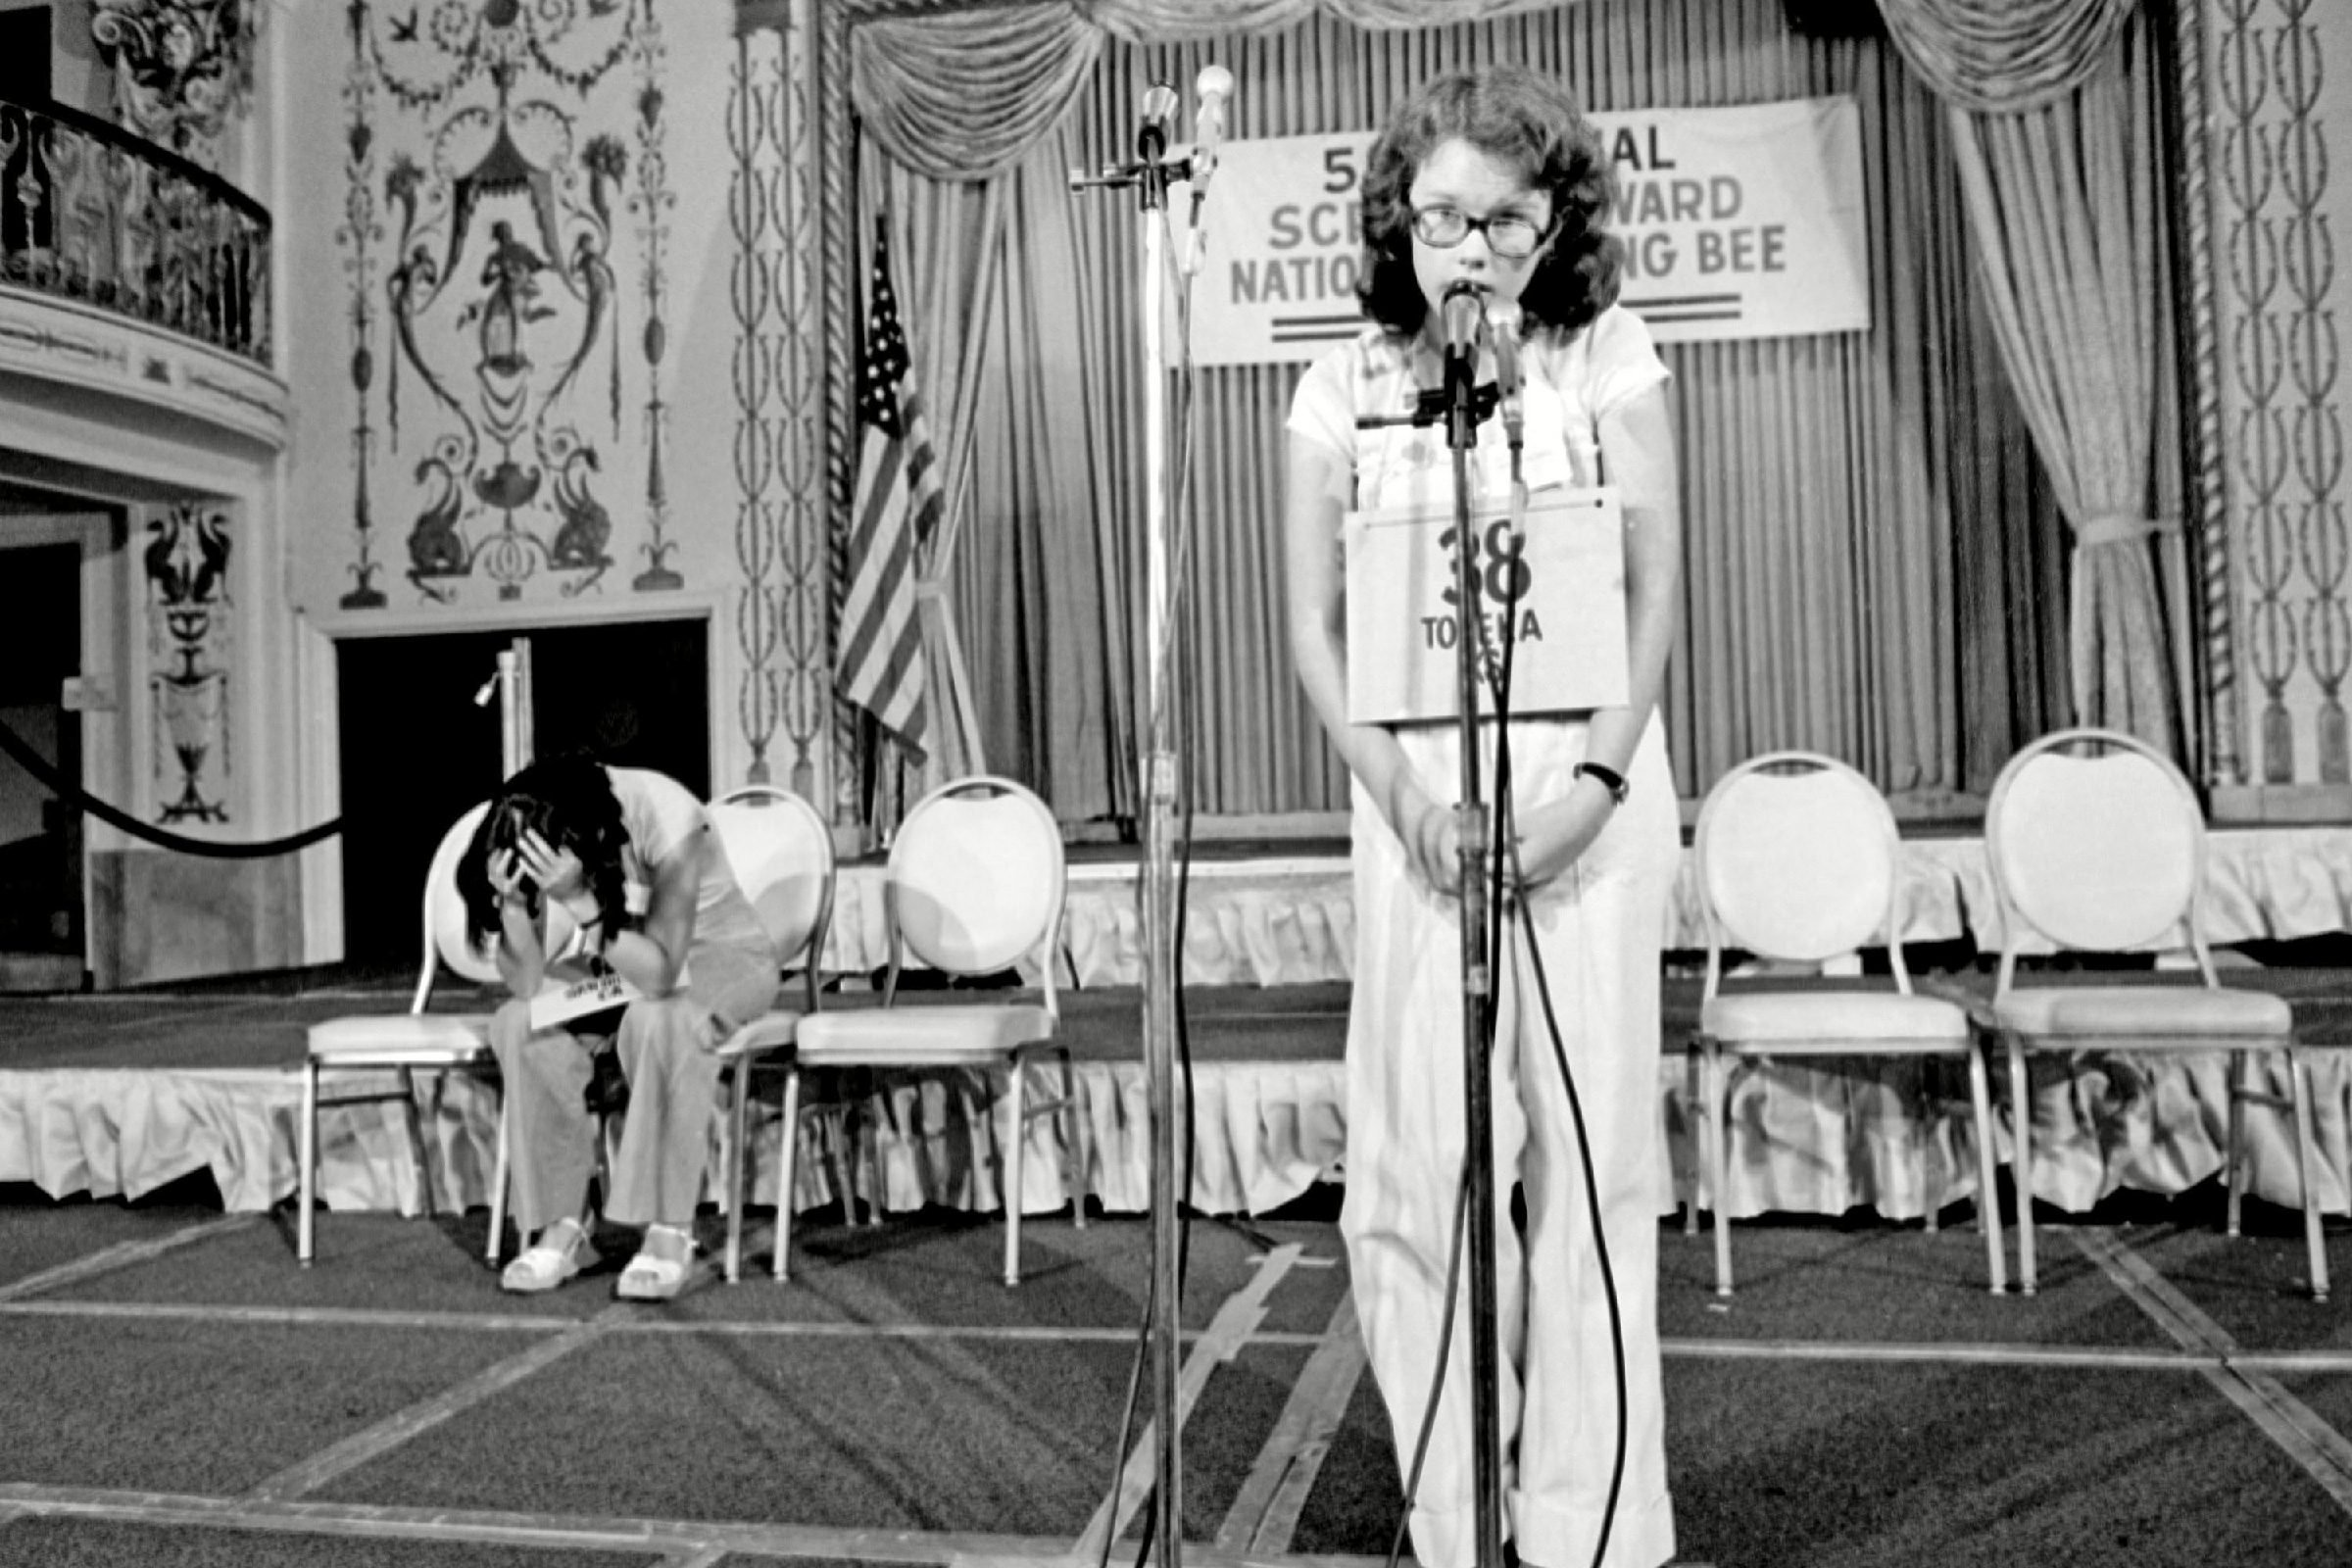 """Peg McCarthy, Lyn Sue Kahng Peg McCarthy of Topeka, Kansas, spells the world """"deification"""" to win the 51st National Spelling Bee in Washington, D.C., . The runner-up Lyn Sue Kahng, seated left, puts her head in her hands. Kahng is from San Diego"""